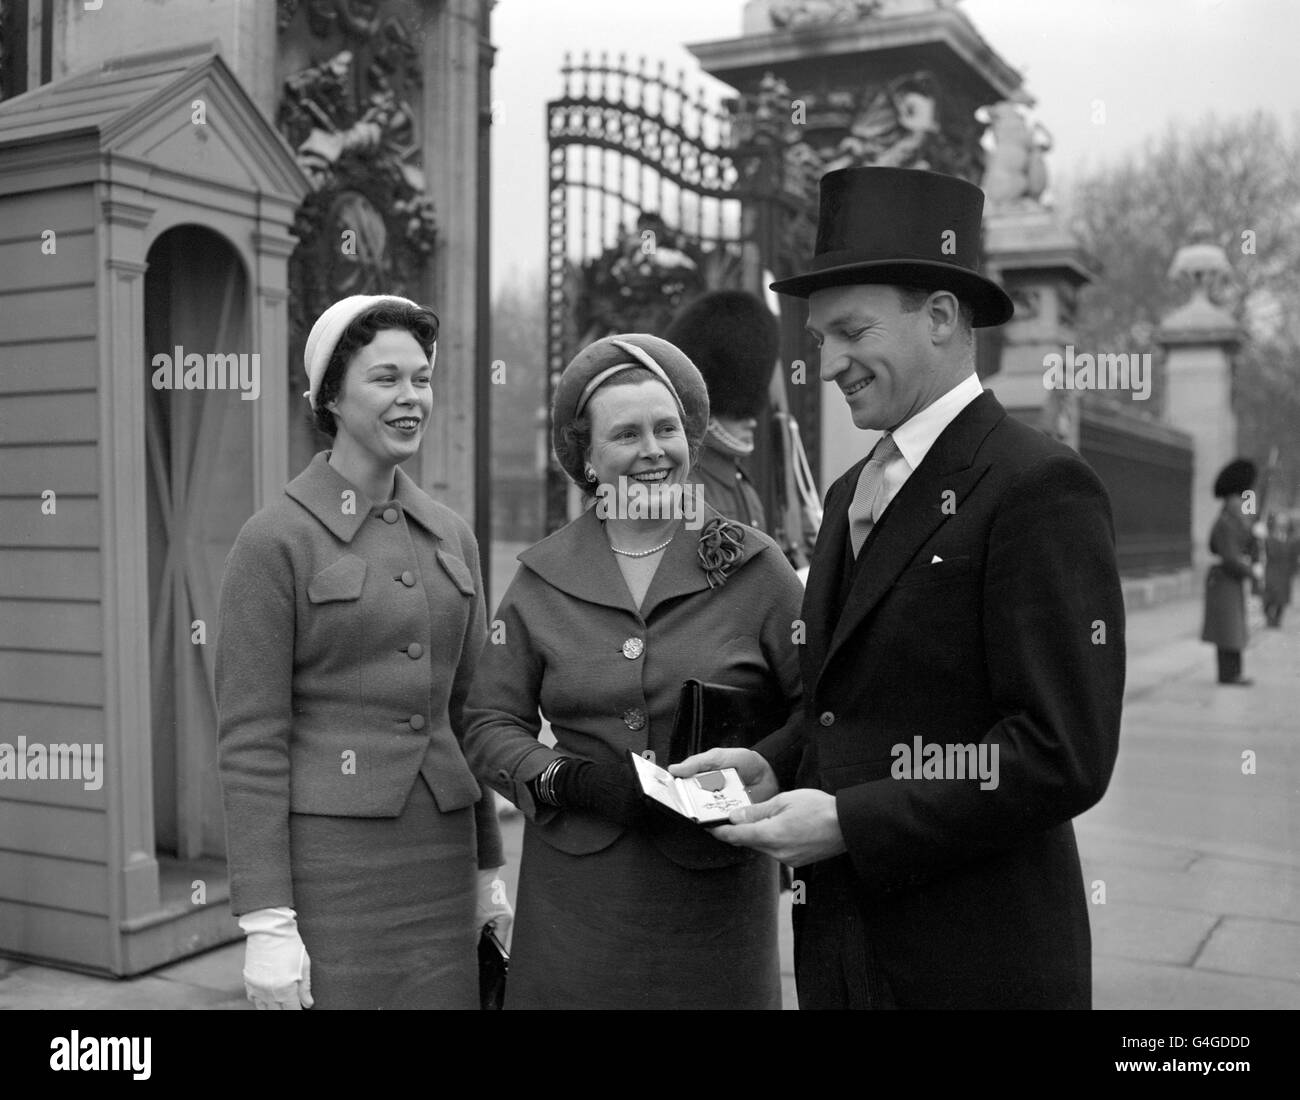 Investitures and Awards - Peter Twiss - Buckingham Palace, London - Stock Image